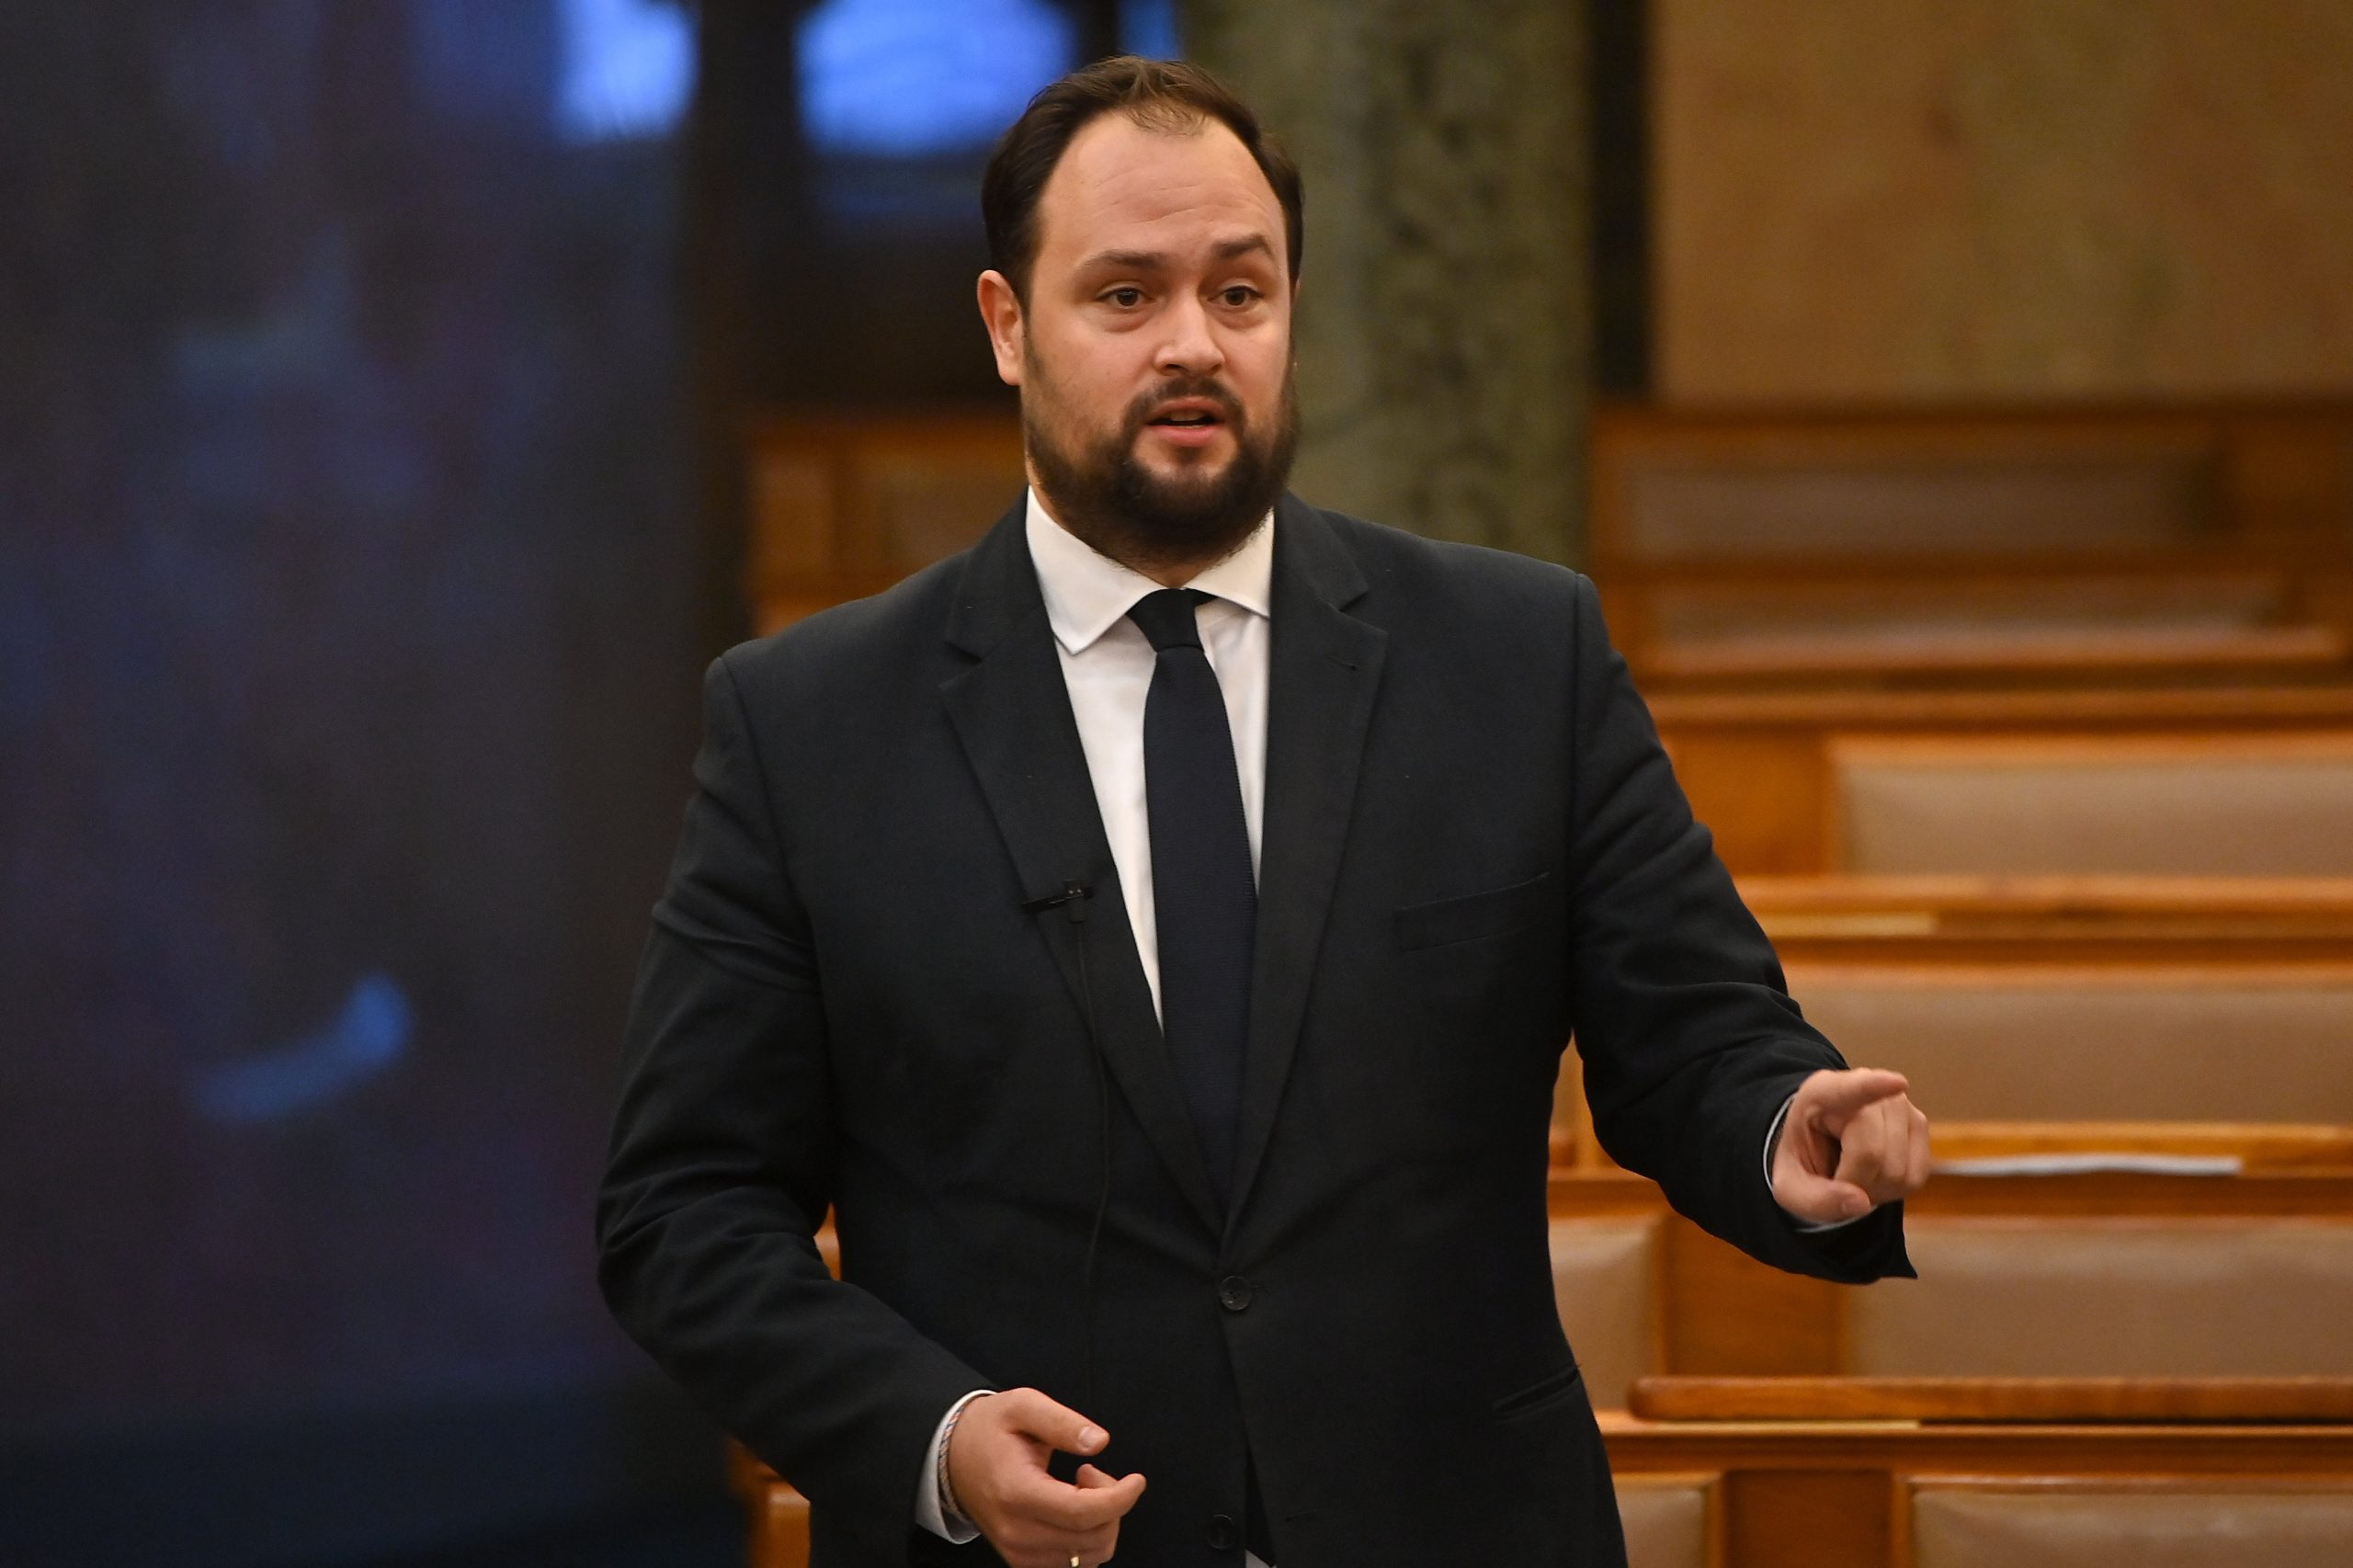 Yet another Hungarian politician representing the ruling party has been denied entry to Ukraine. All the details of the incident